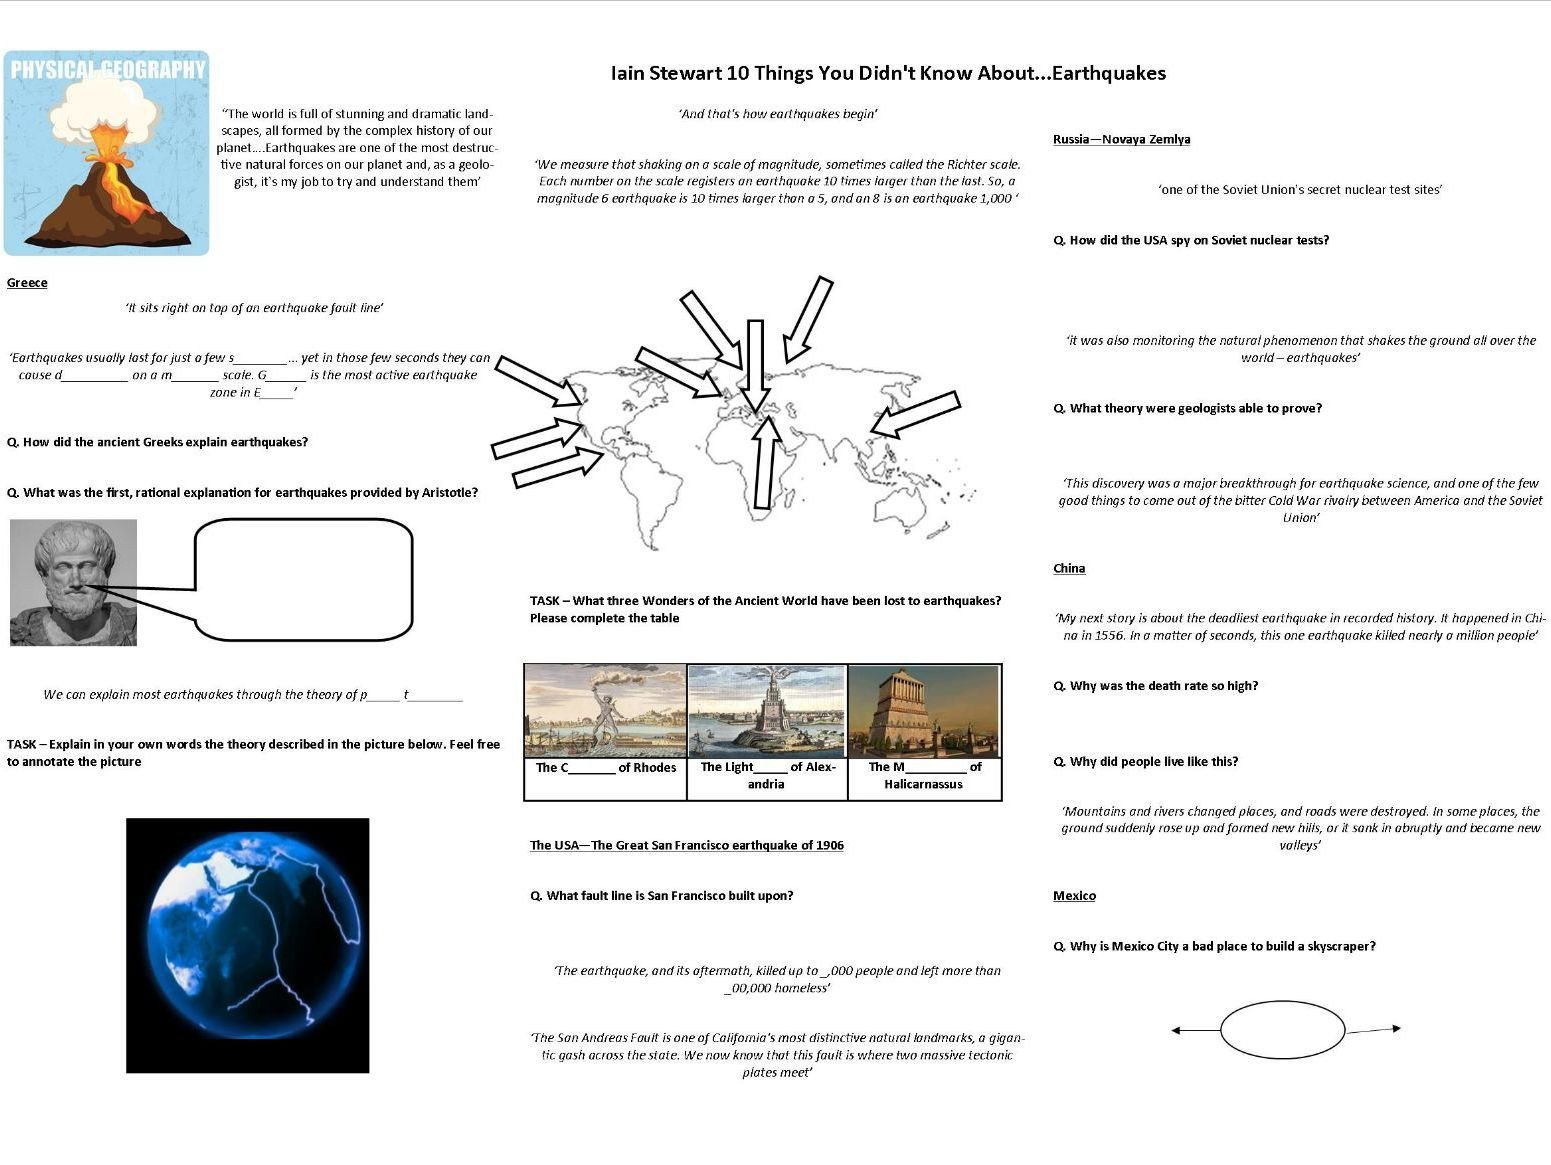 Earthquake Worksheets Middle School Earthquakes 10 Things You Didn T Know About Worksheet to Support the Bbc Doc with Iain Stewart